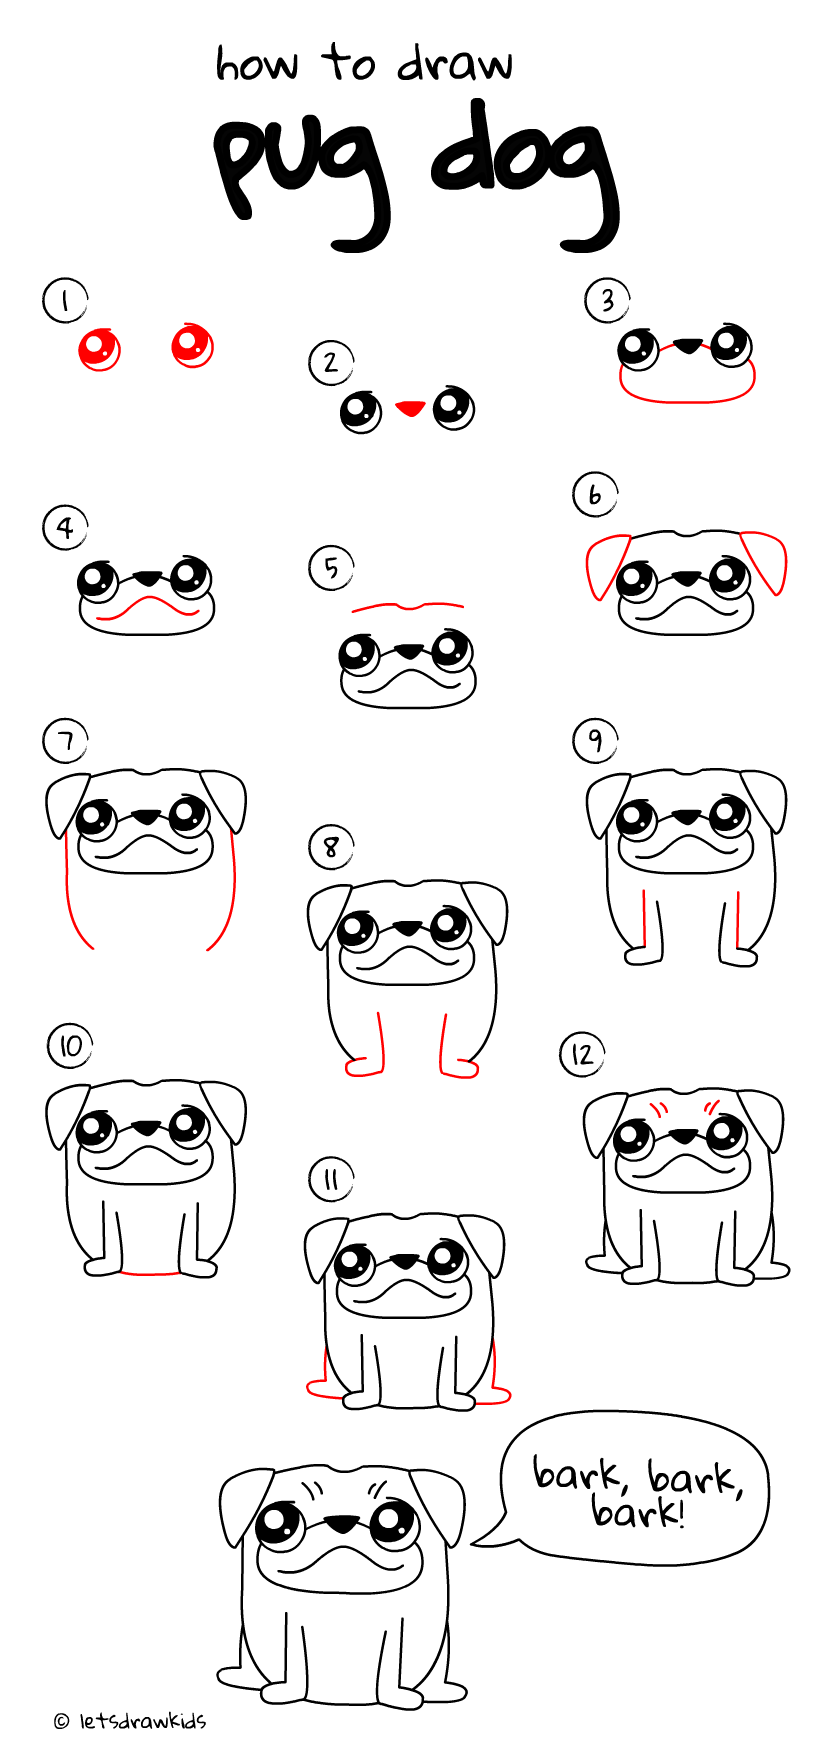 Dog drawing for kids step by step